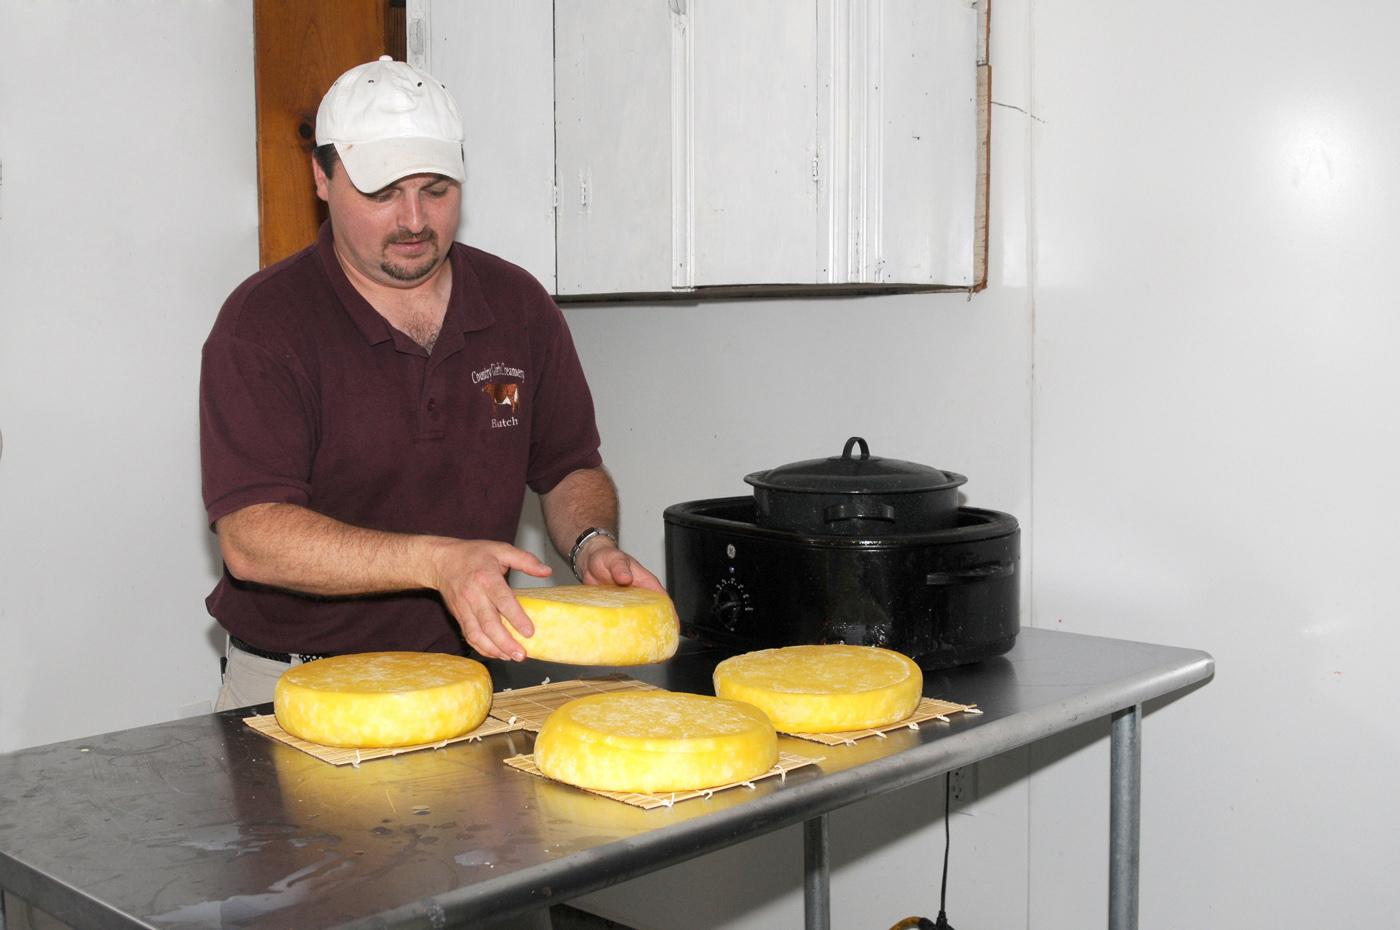 Butch Smith prepares to package cheese produced from Jersey cow milk on his family farm. (Photo by Kat Lawrence)